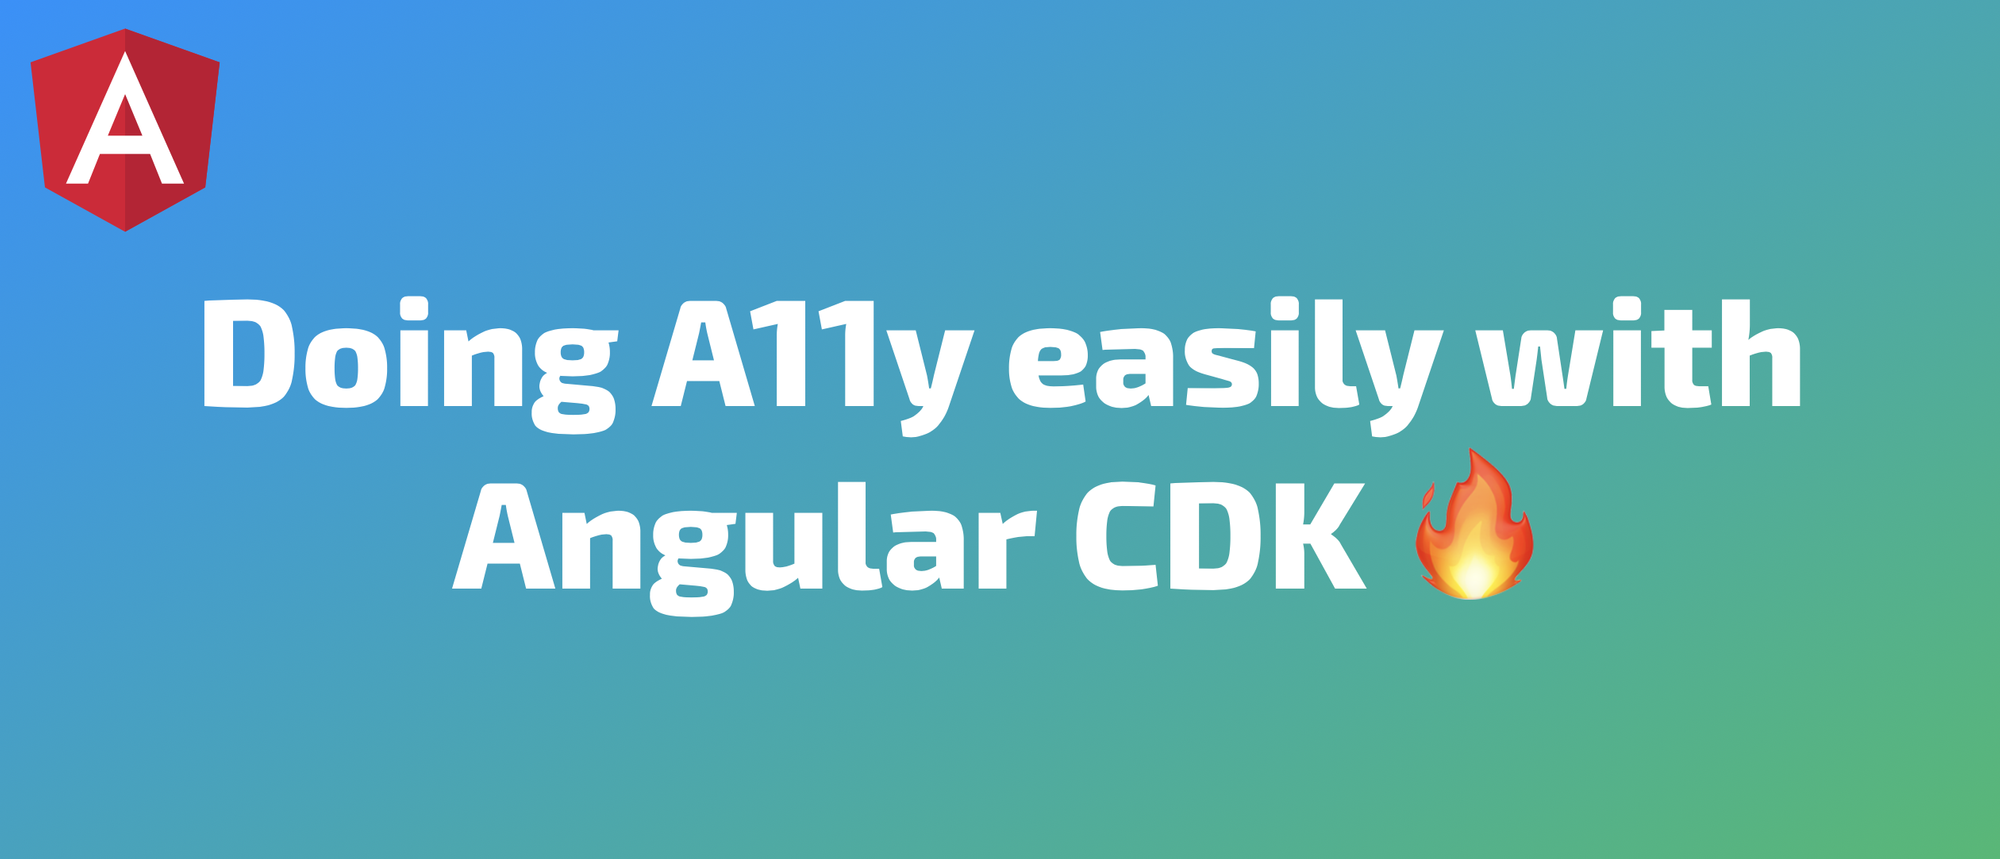 Doing A11y easily with Angular CDK. Keyboard-Navigable Lists